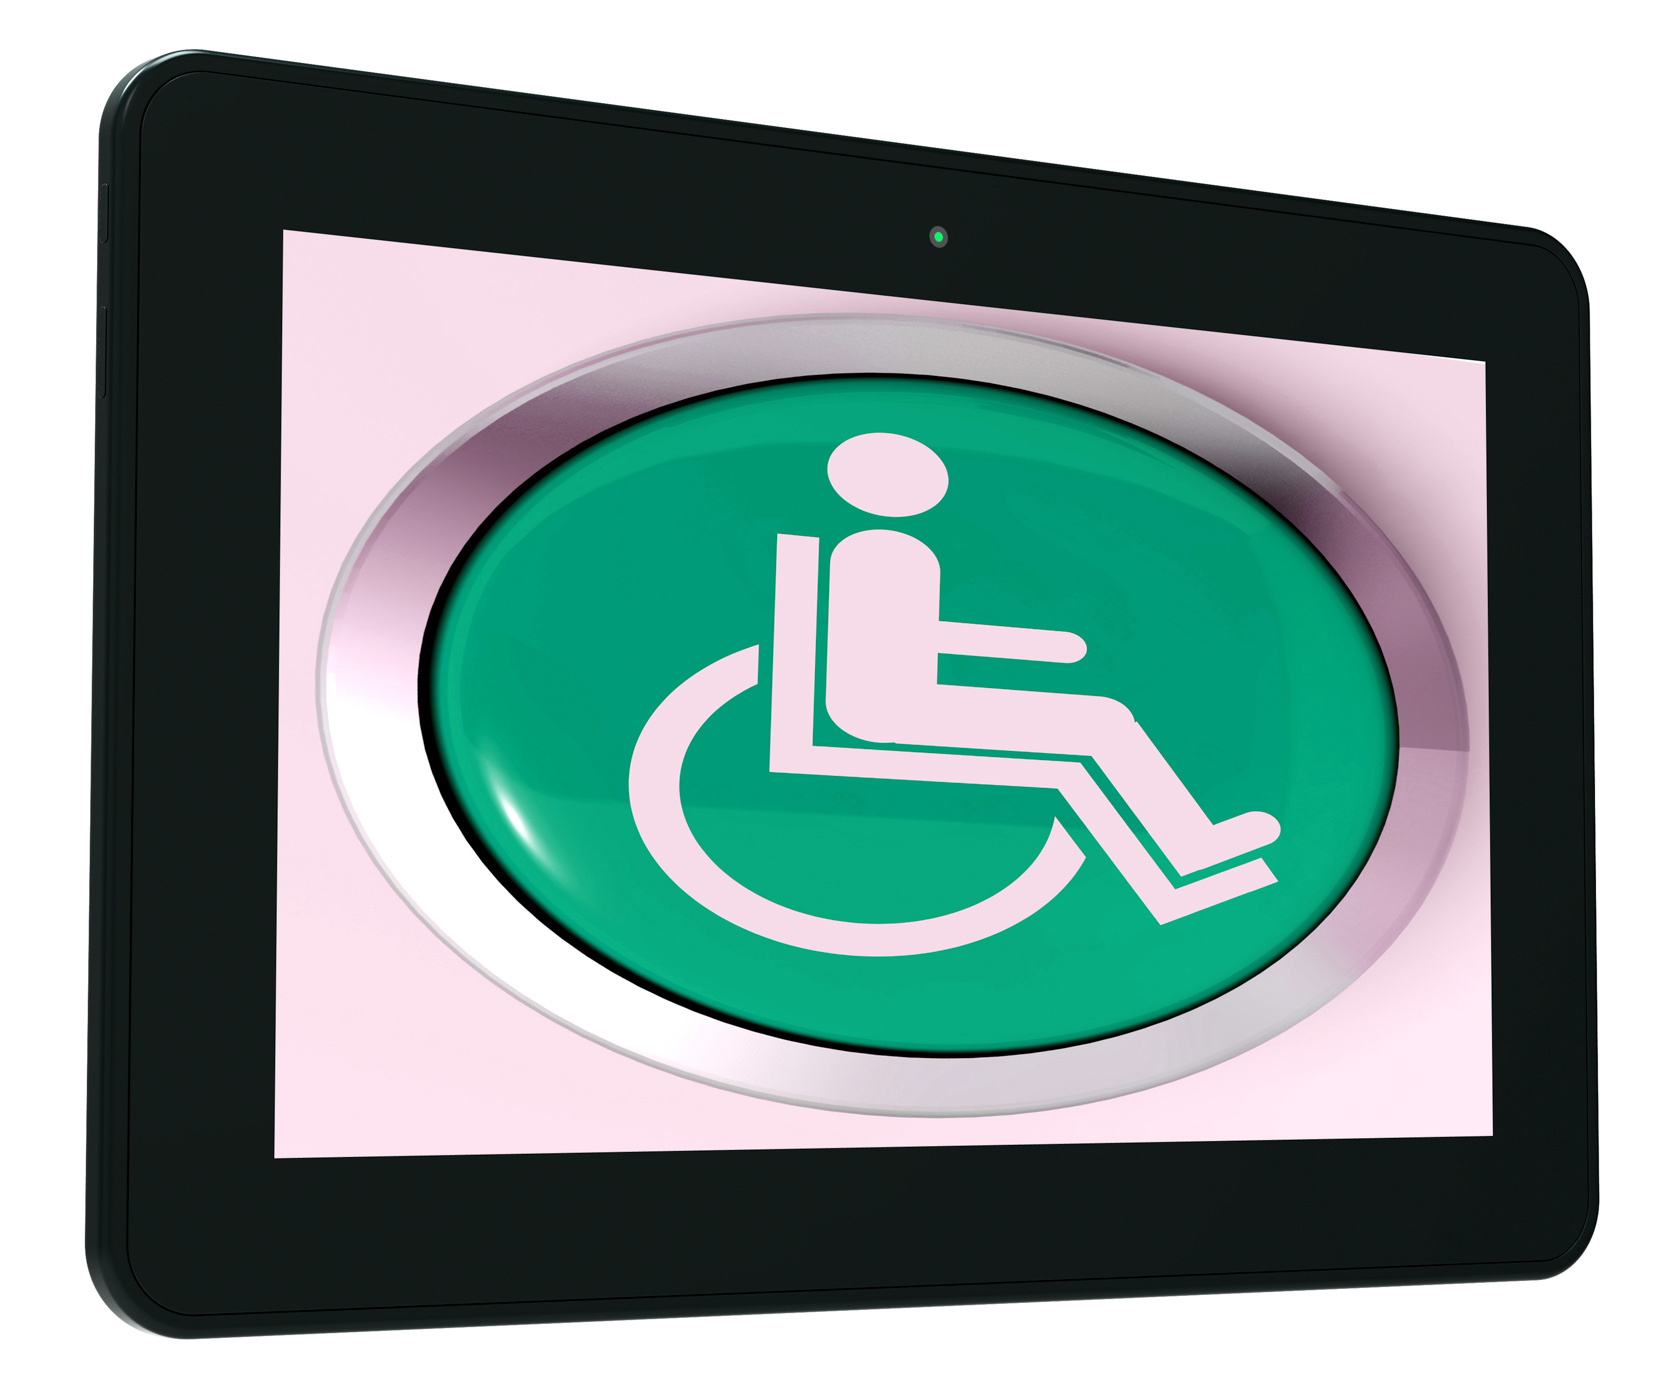 Disabled Tablet Shows Wheelchair Access Or Handicapped, Accessibility, Icon, Wheelchair, Web, HQ Photo